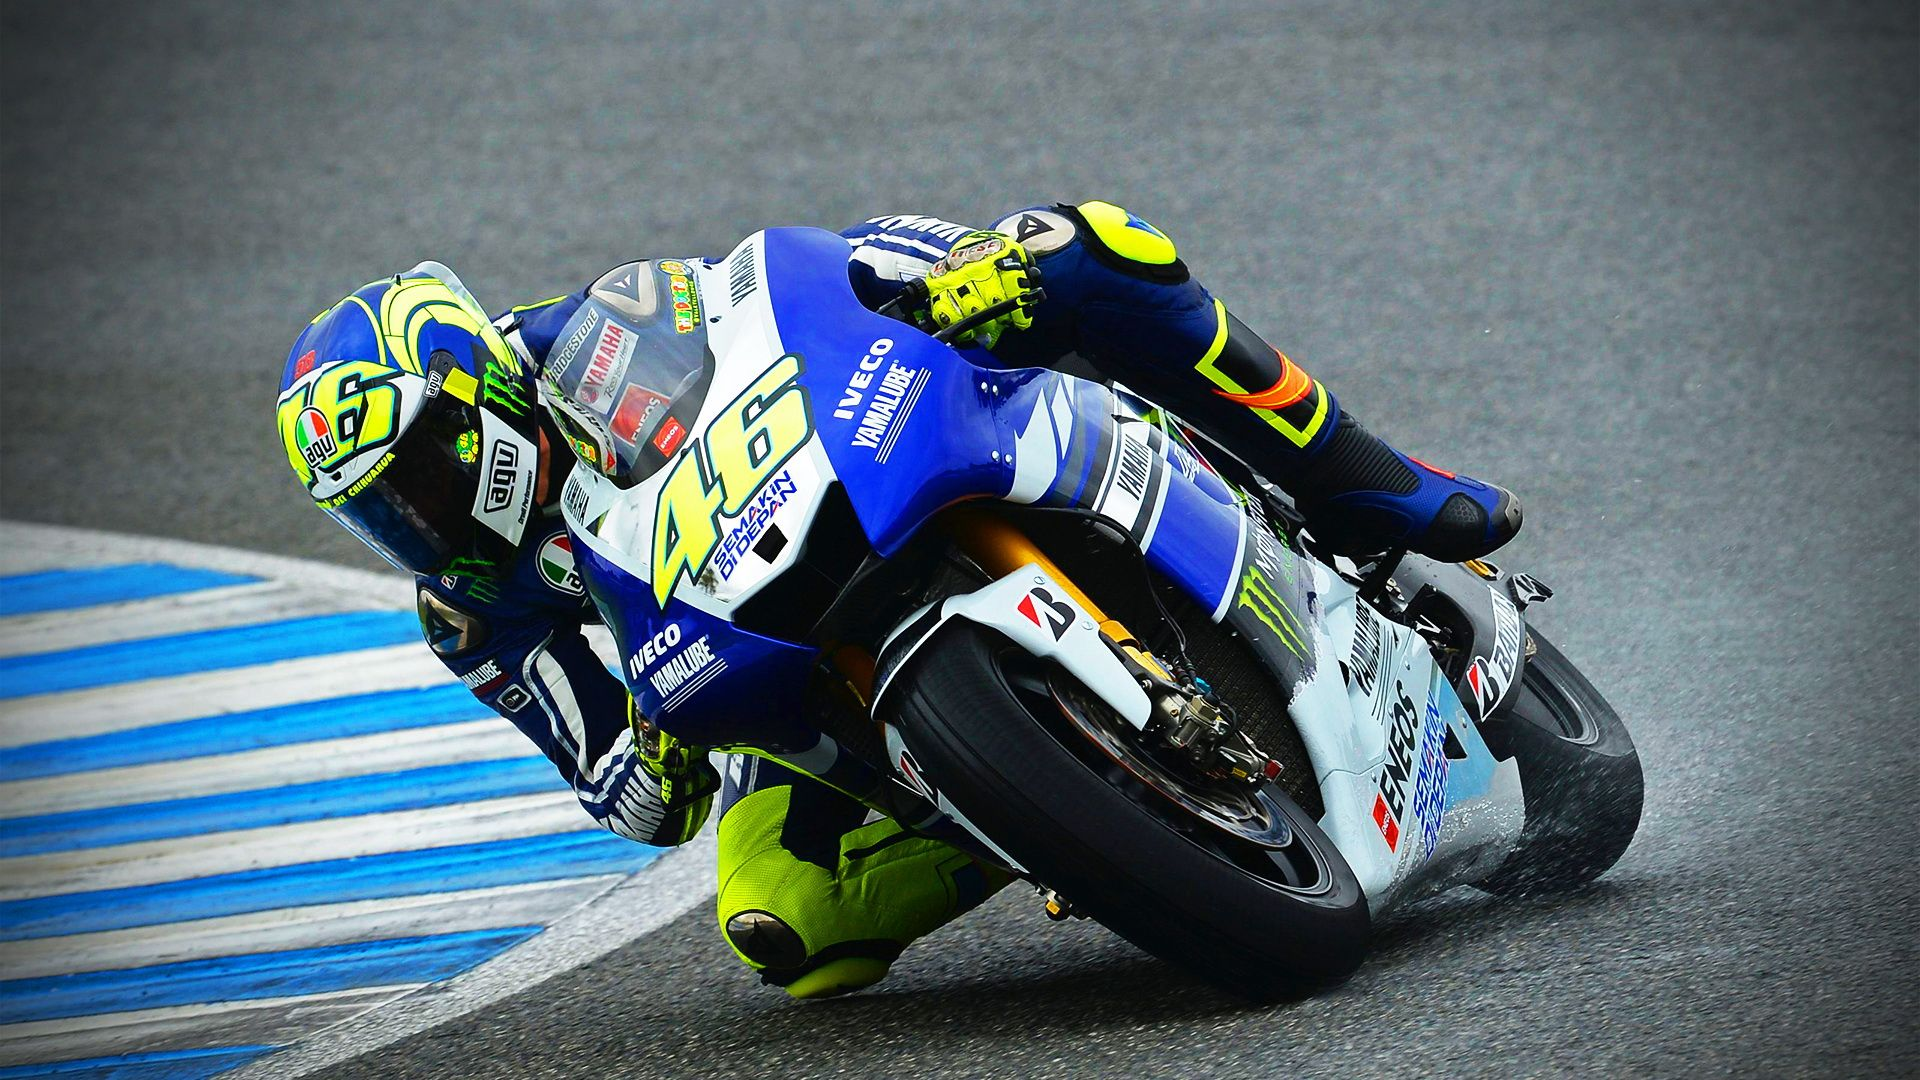 Valentino Rossi Wallpapers Group